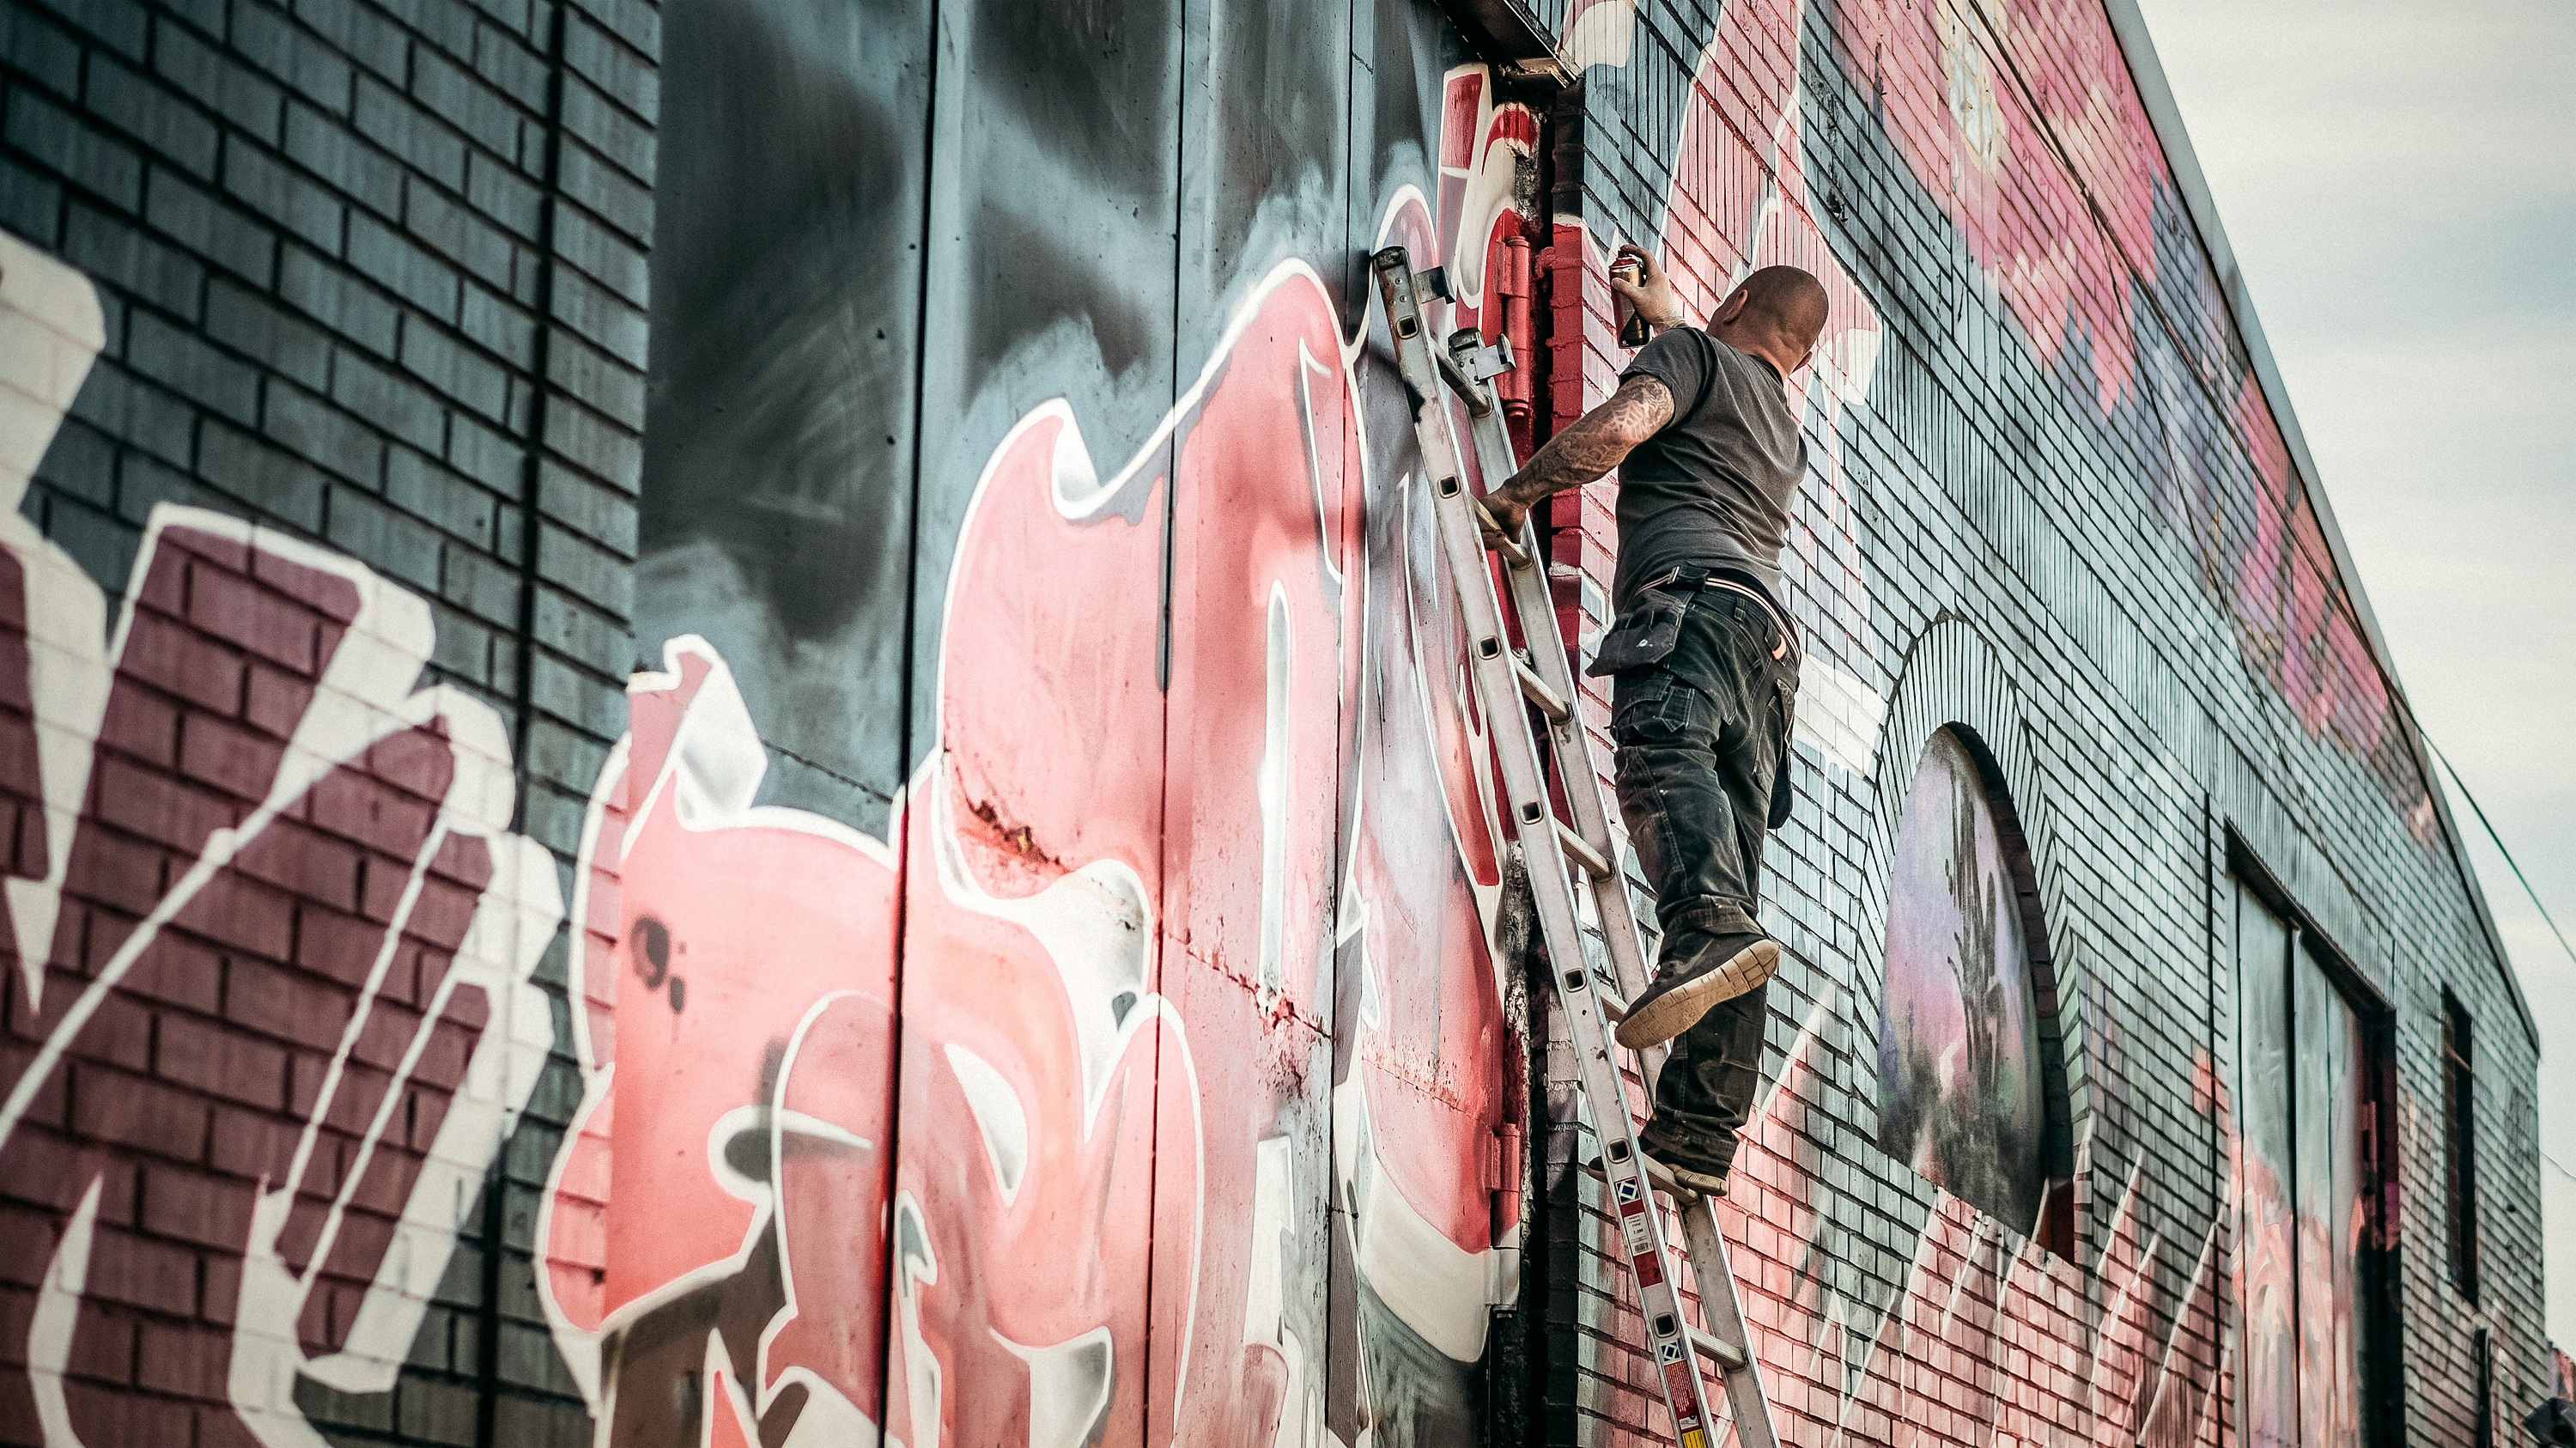 Artistic,ladder,paint,person,male